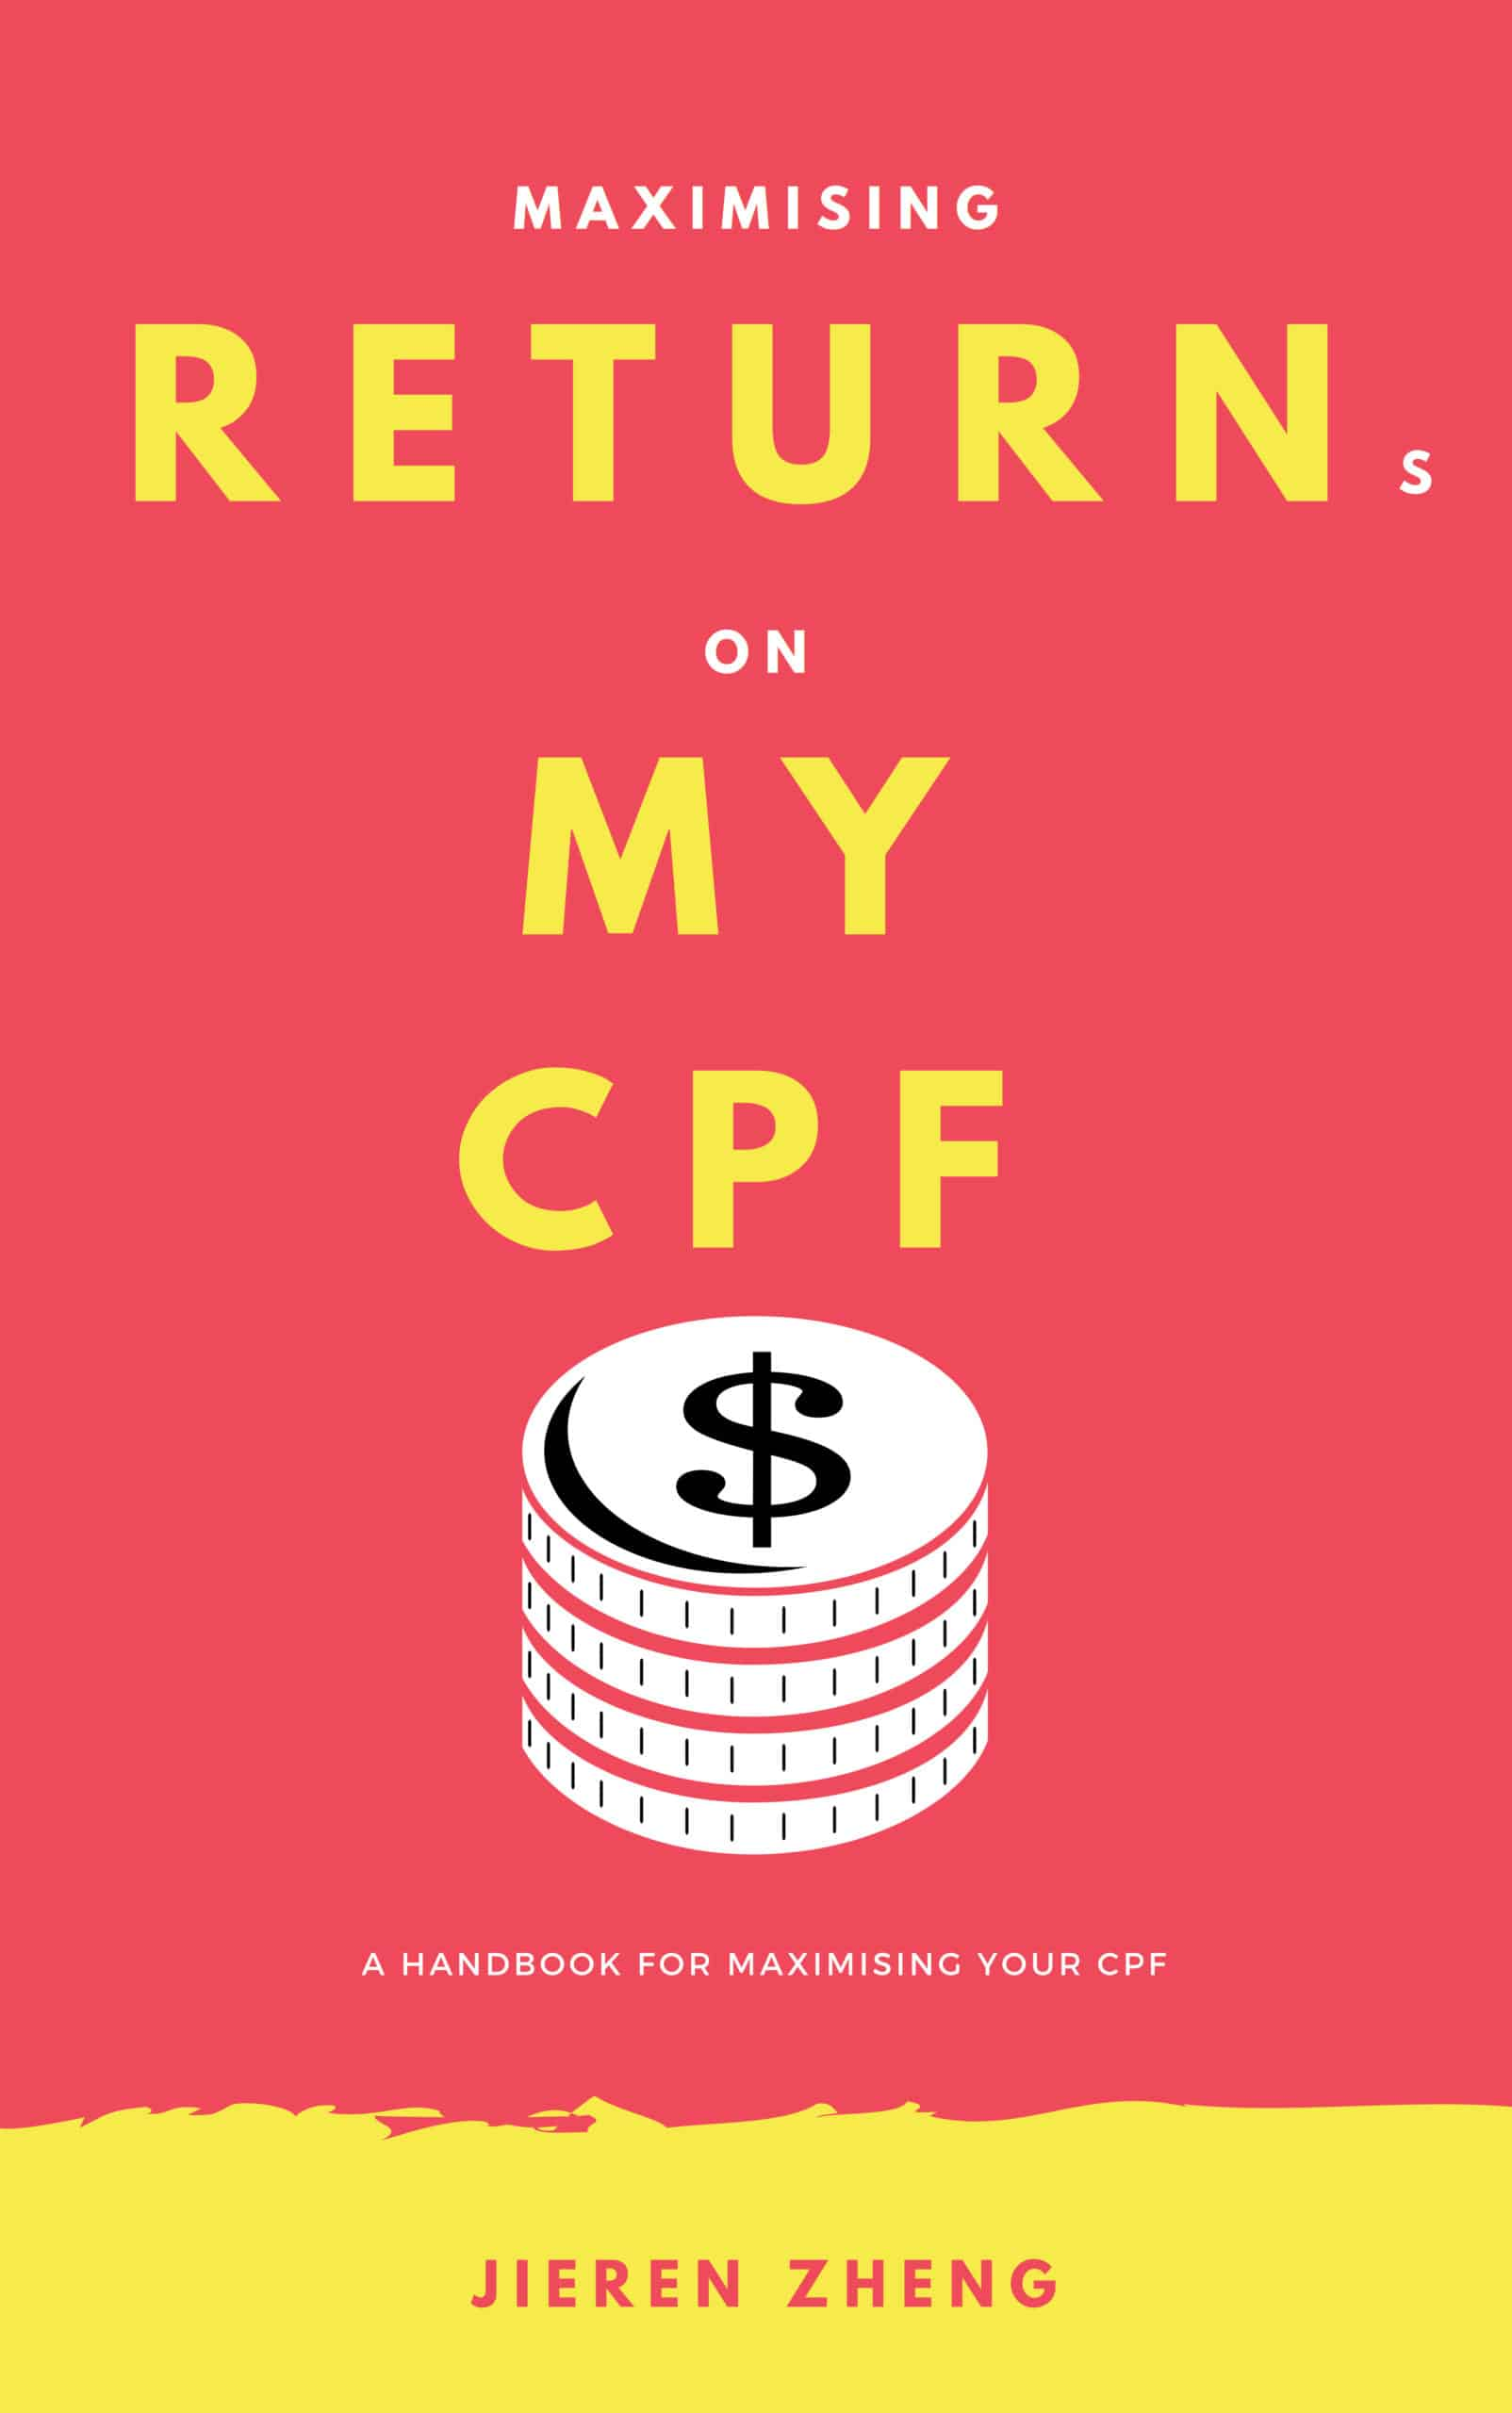 Maximising Returns on My CPF is now available on Google Books too!